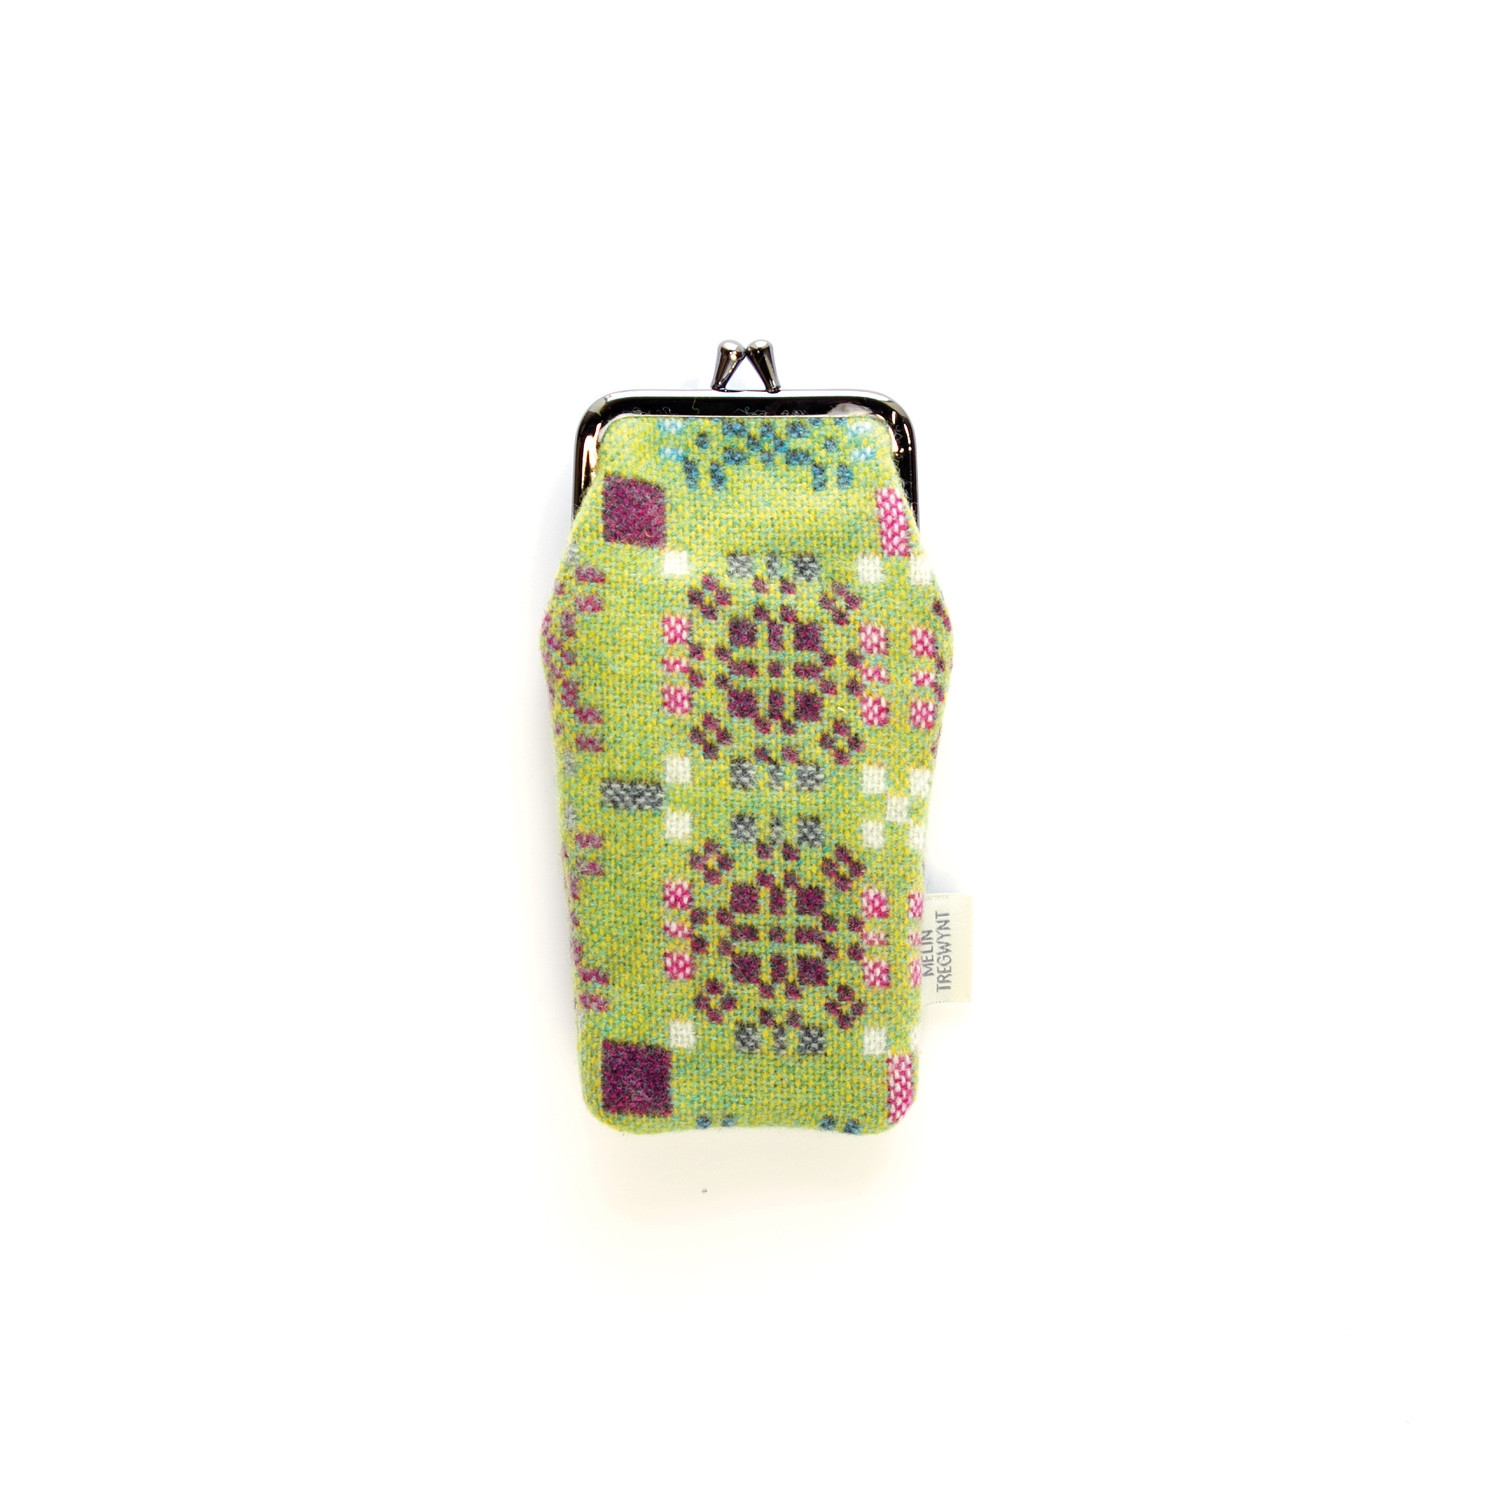 Knot Garden Green Spectacle Case